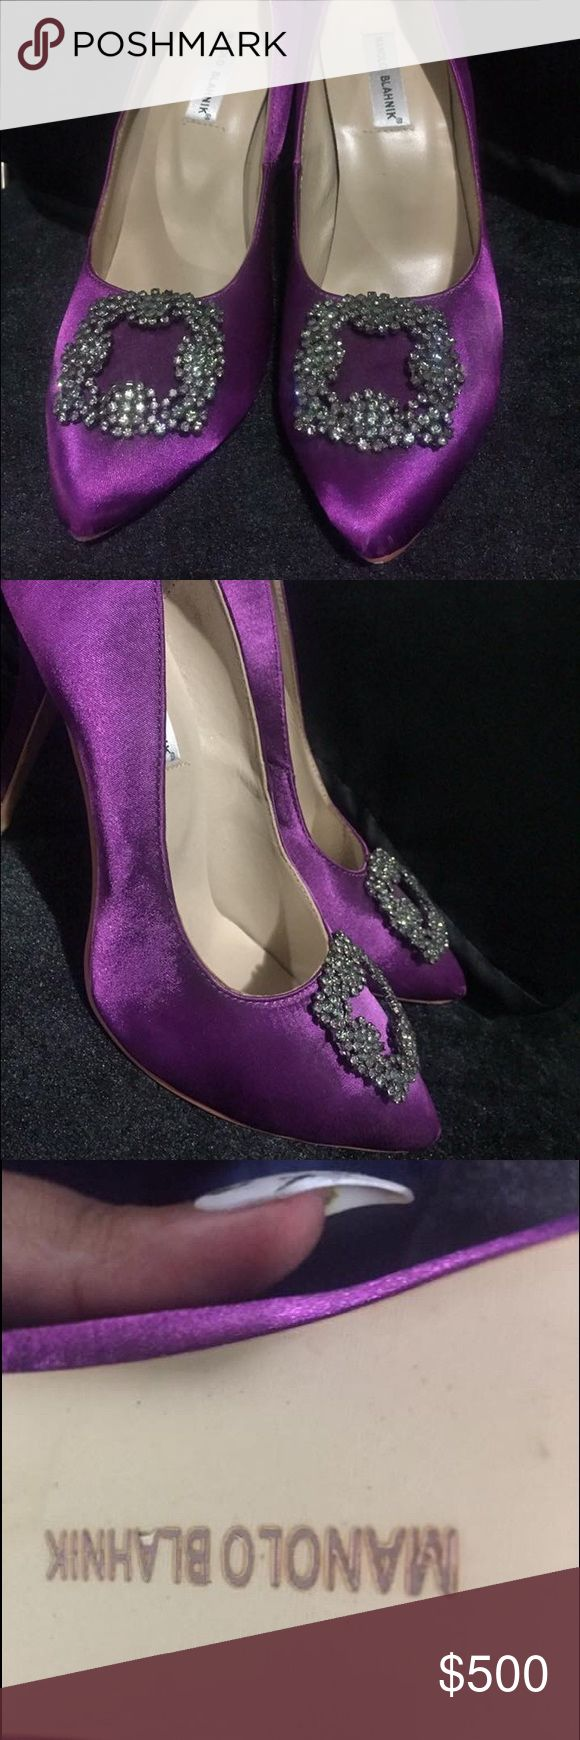 Manolo Blahnik Purple Pumps Like new. Worn for one night. Slight scuff on tip of left shoe. Other than that, perfect condition. I'm a 9 1/2 to 10 US and they fit perfect. Manolo Blahnik Shoes Heels